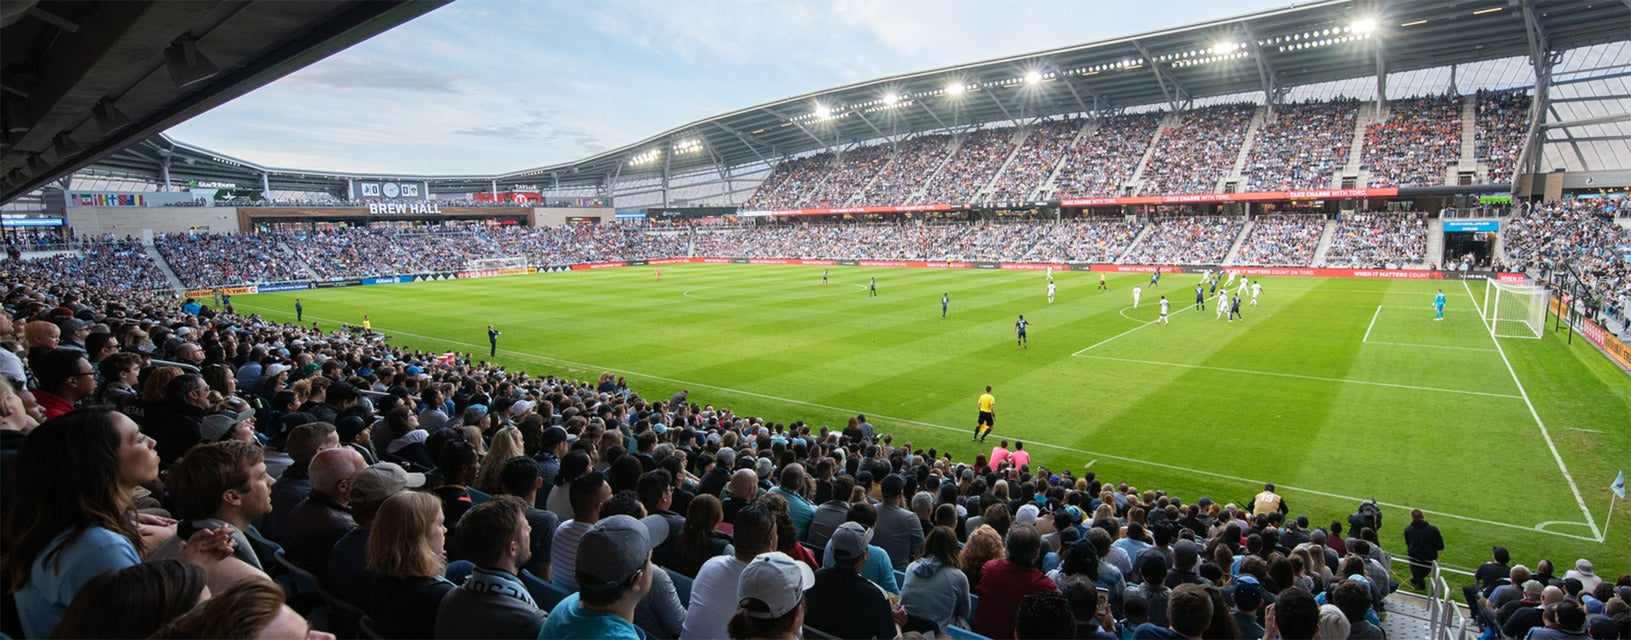 2018 MLS All-Star Game Tickets